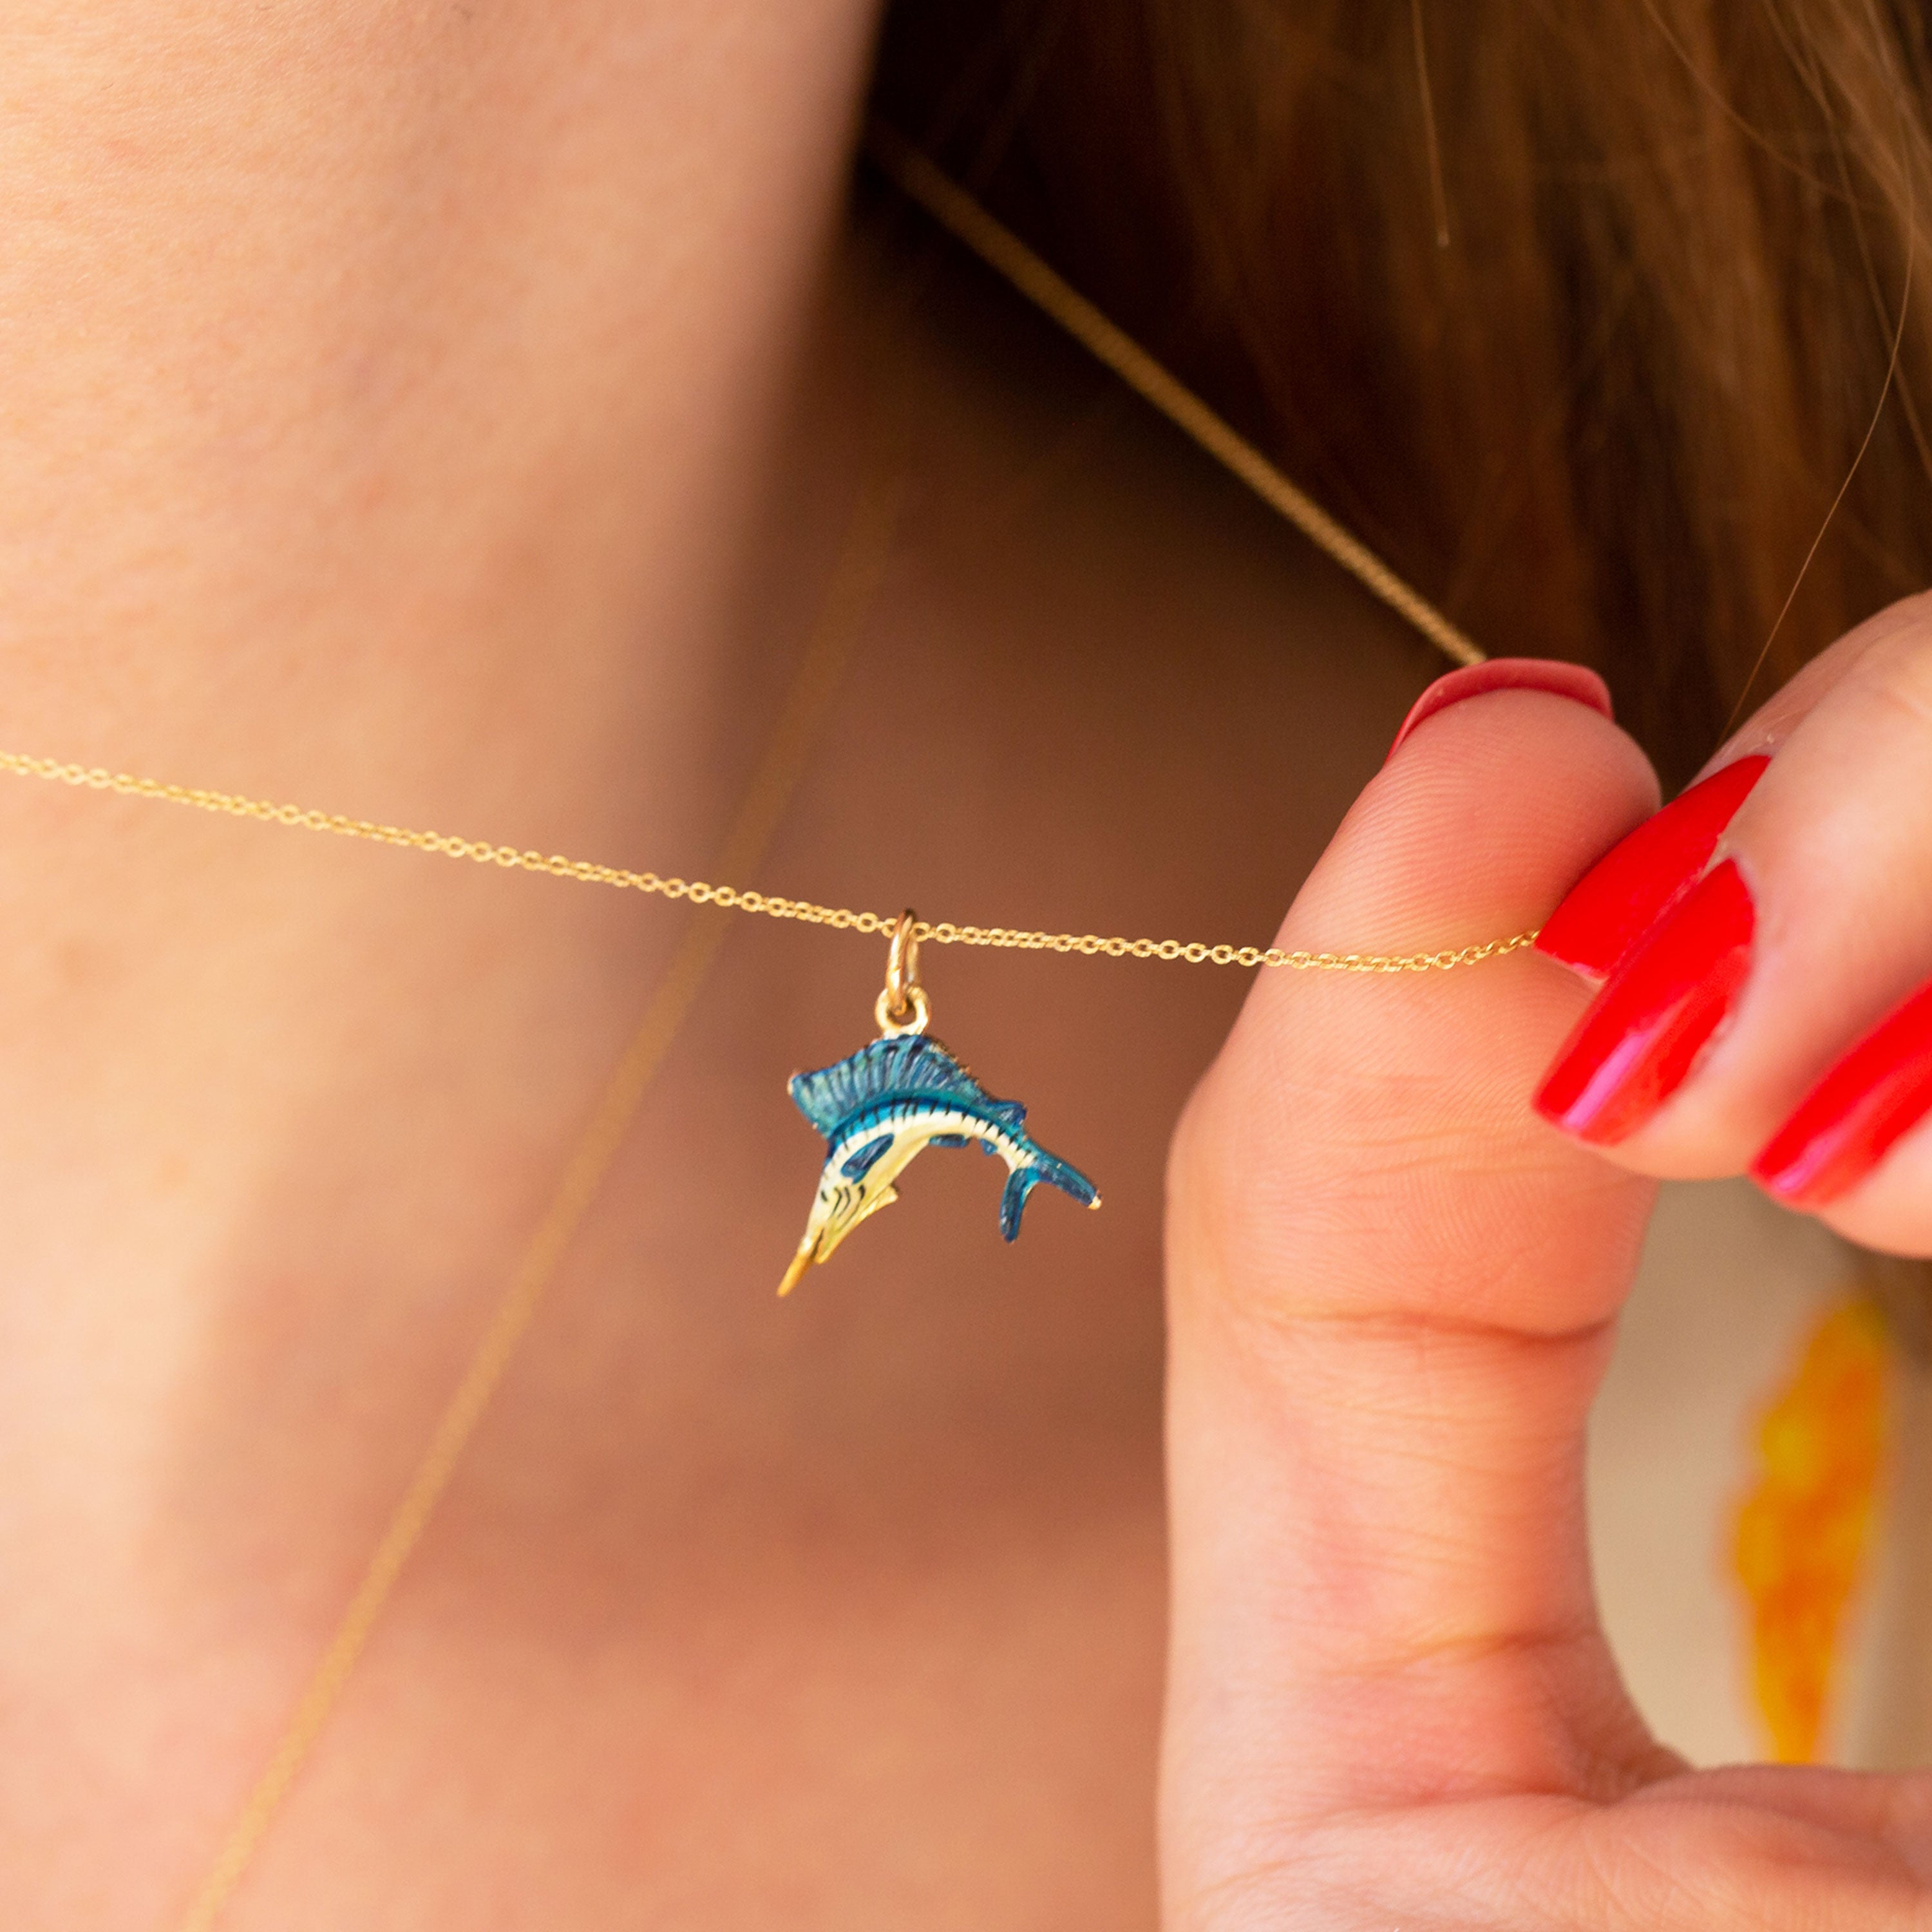 Jumping Fish With Enamel And 14k Gold Charm